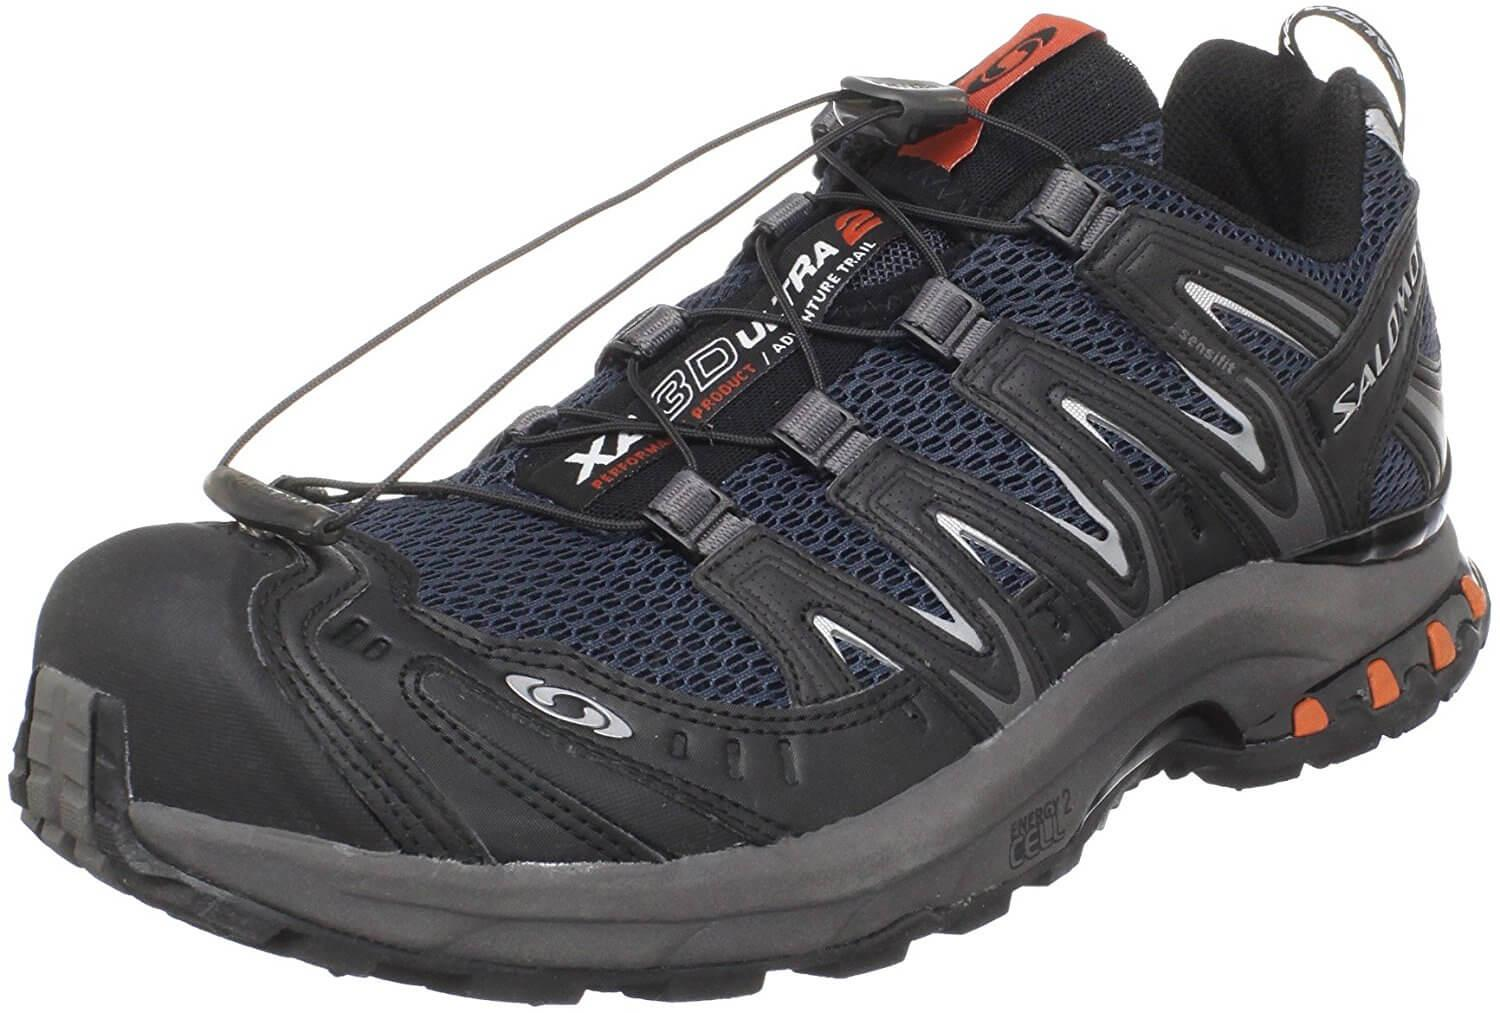 the Salomon XA Pro 3D Ultra 2 GTX is a hardy trail running shoe